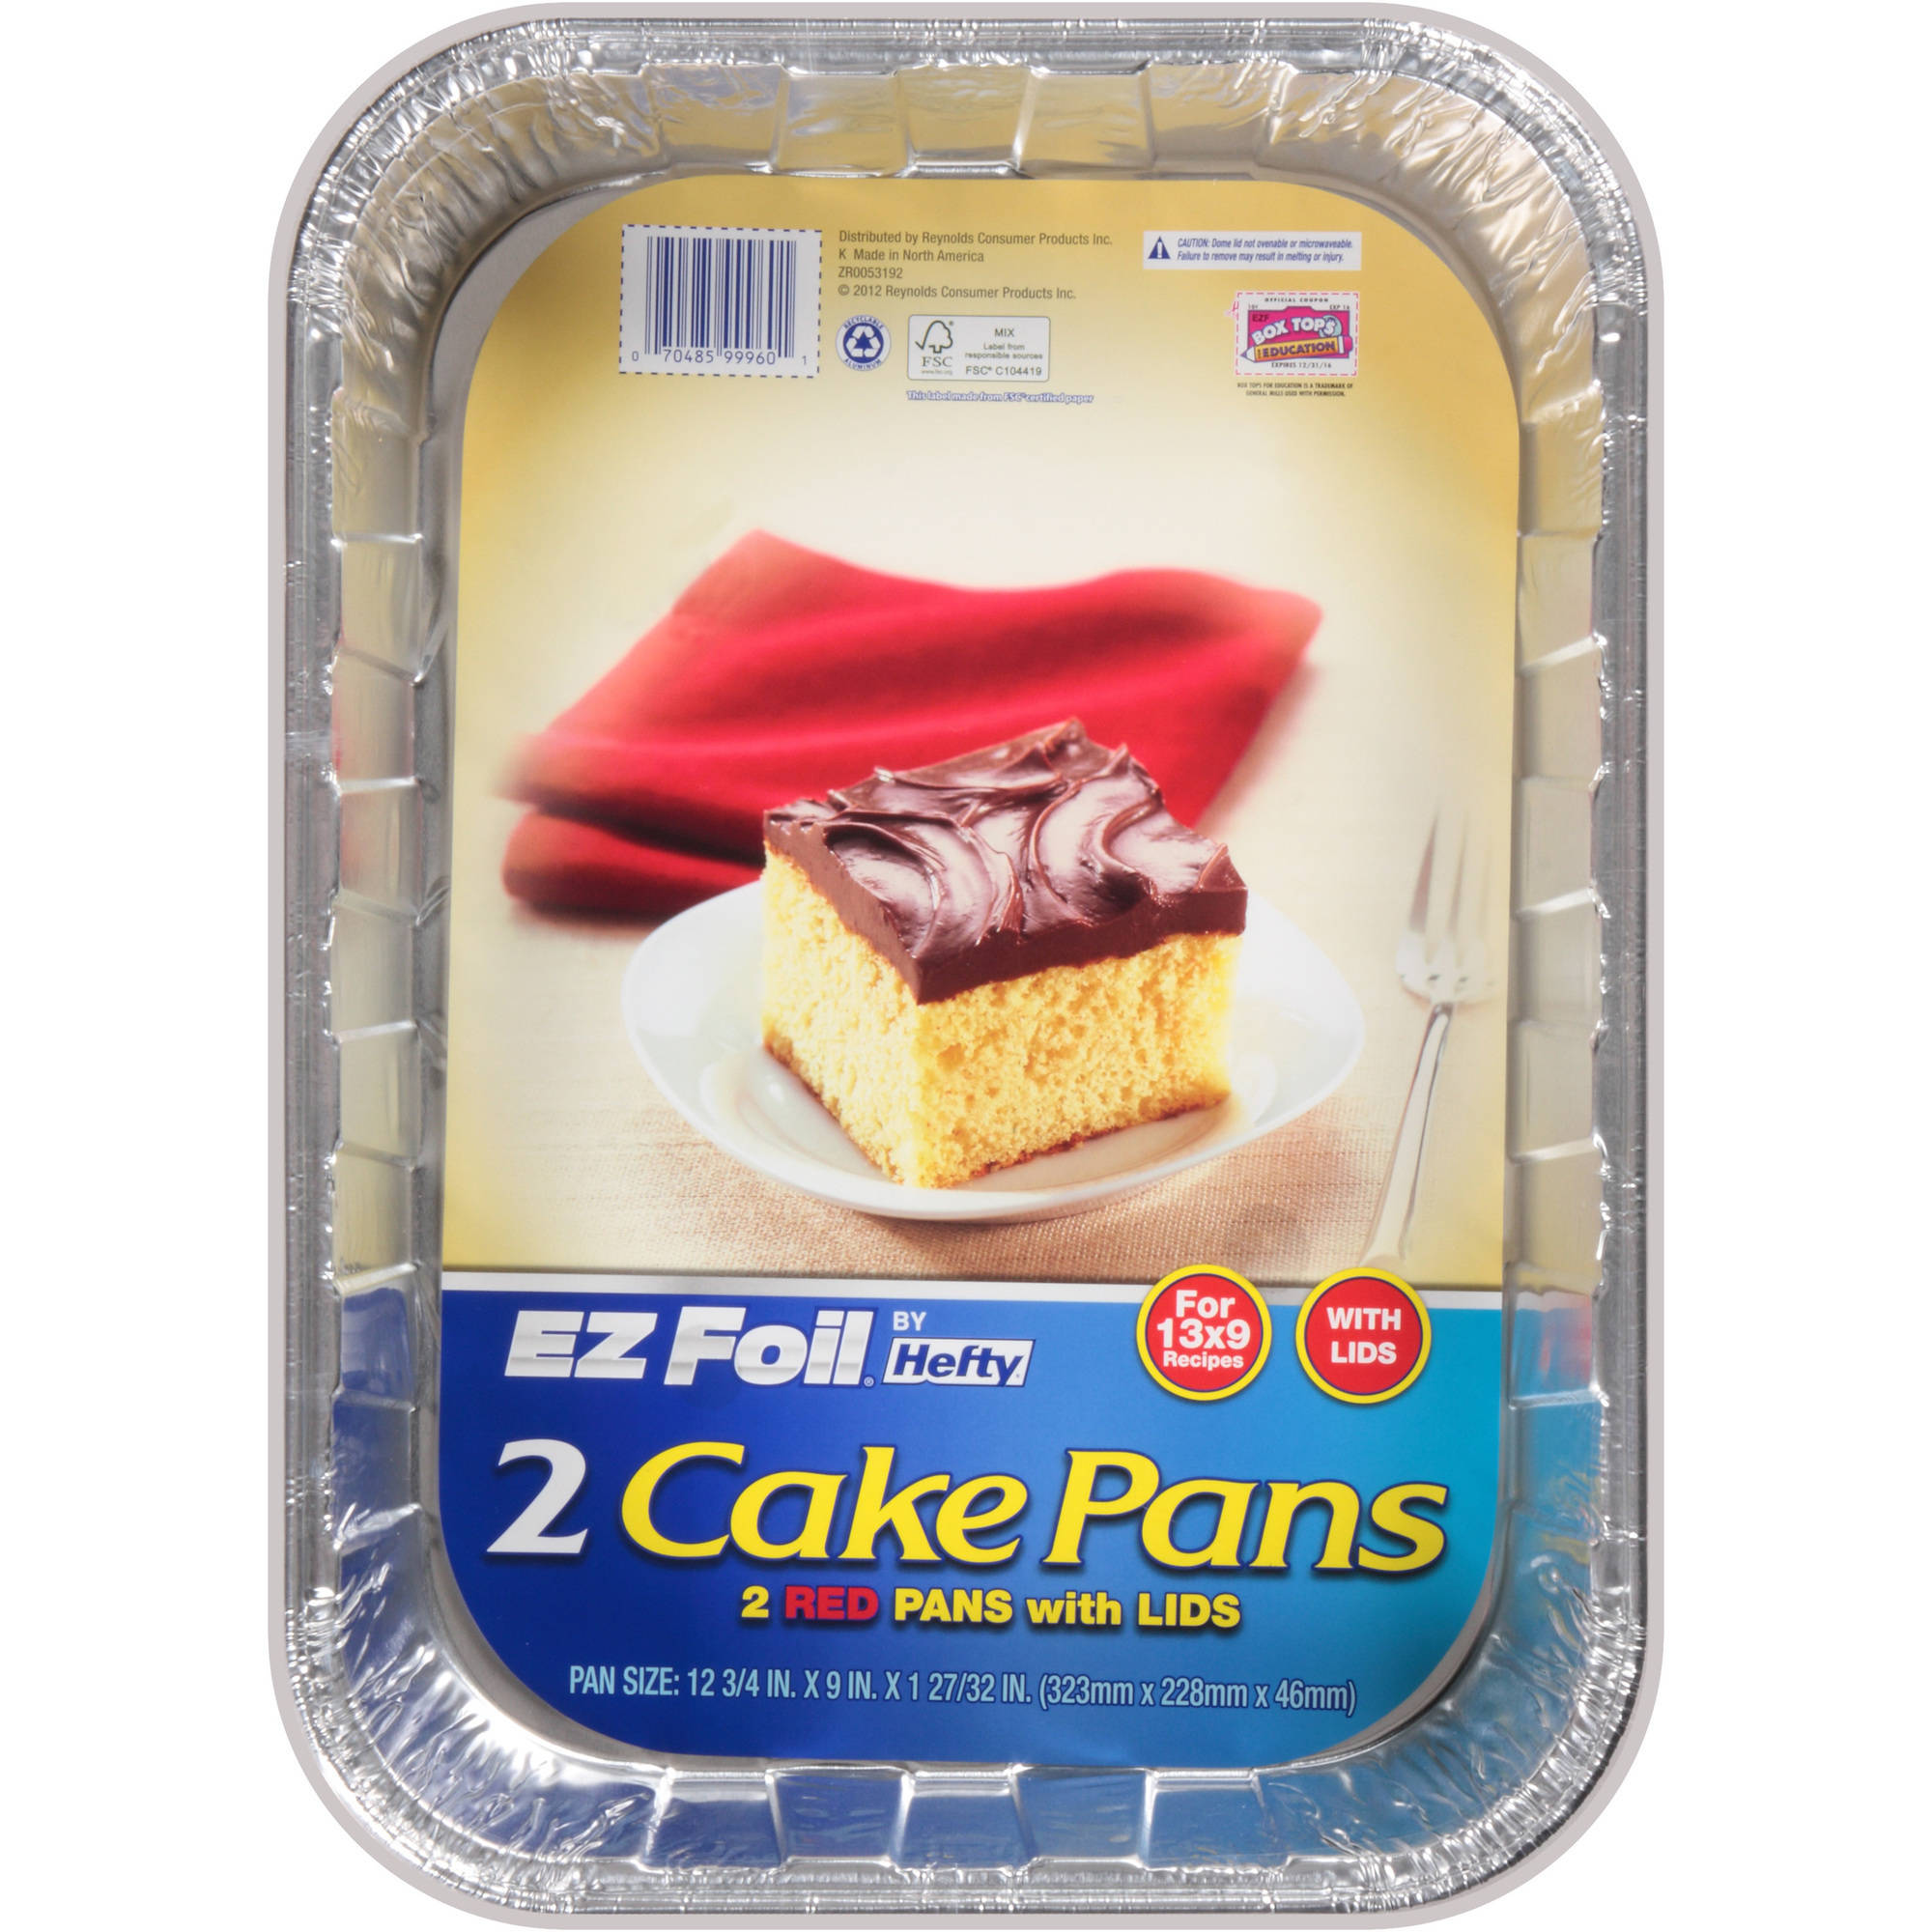 "Hefty EZ Foil 13"" x 9"" Cake Pans with Lids, Red, 2 ct"